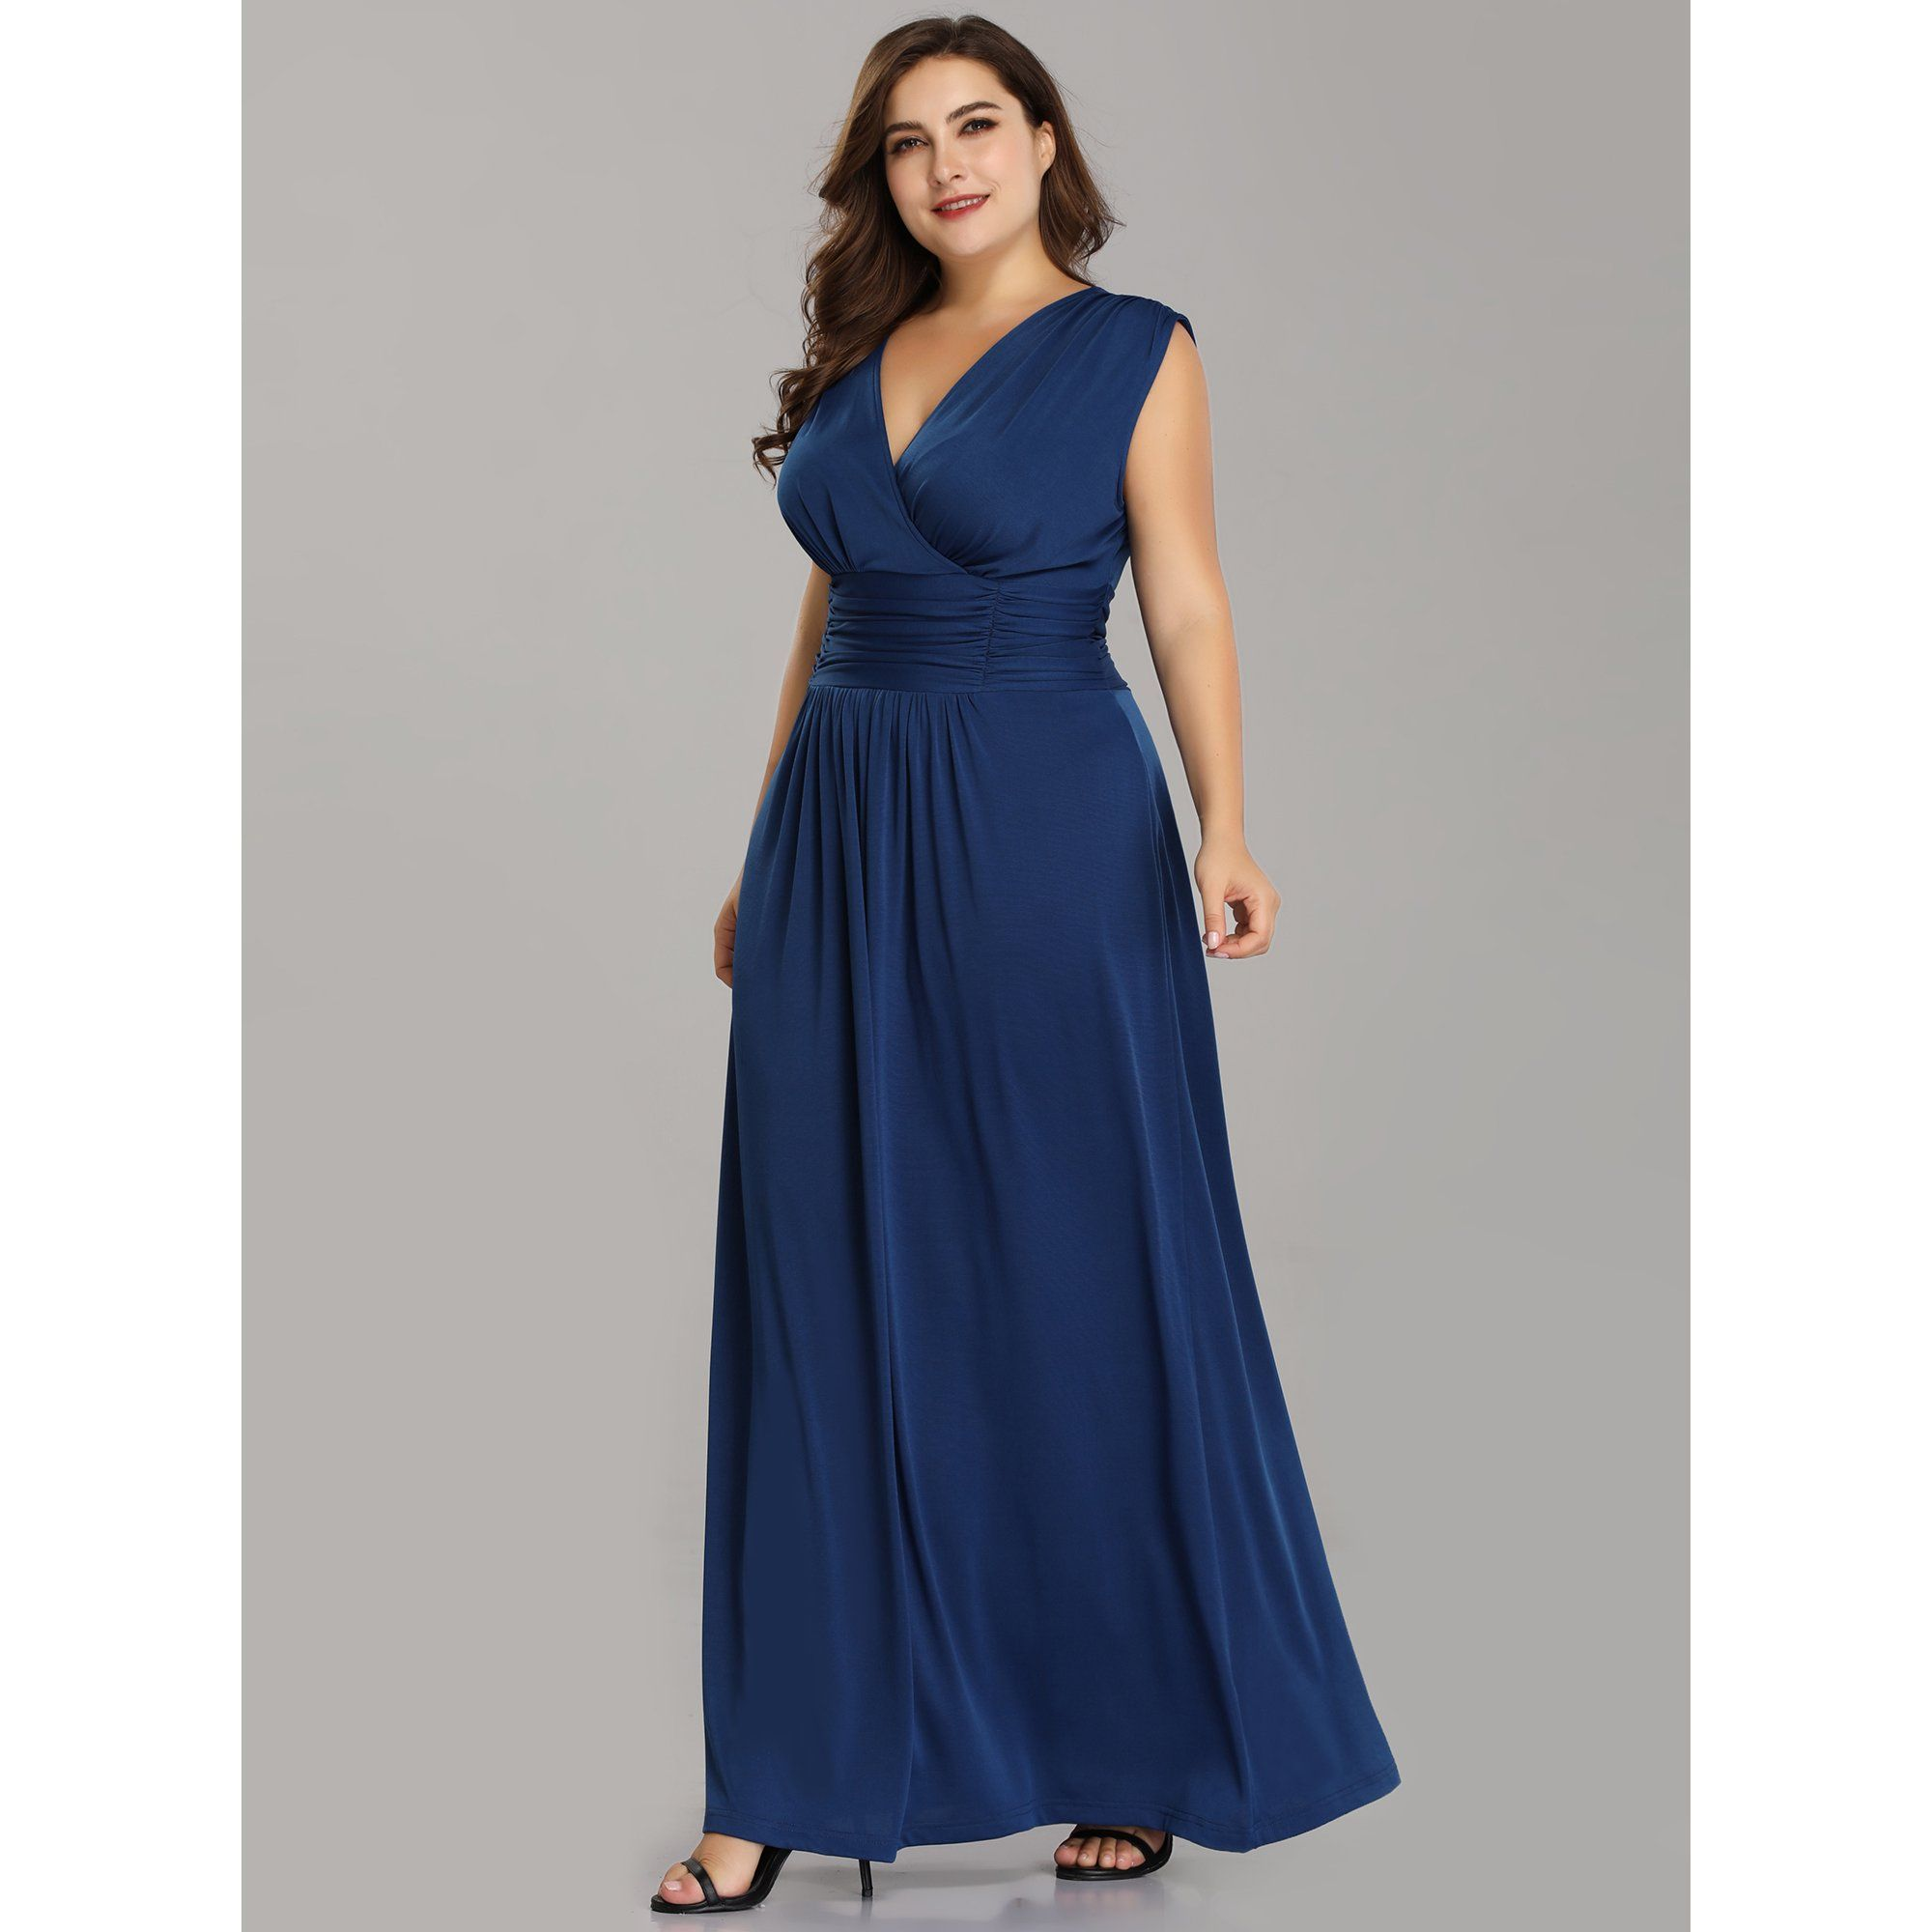 Ever Pretty Ever Pretty Women S Plus Size Long Blue Formal Evening Party Mother Of The Bride Dresses For Women 07661 Us16 Walmart Com In 2021 Cheap Formal Dresses Evening Dresses Plus Size [ 2000 x 2000 Pixel ]